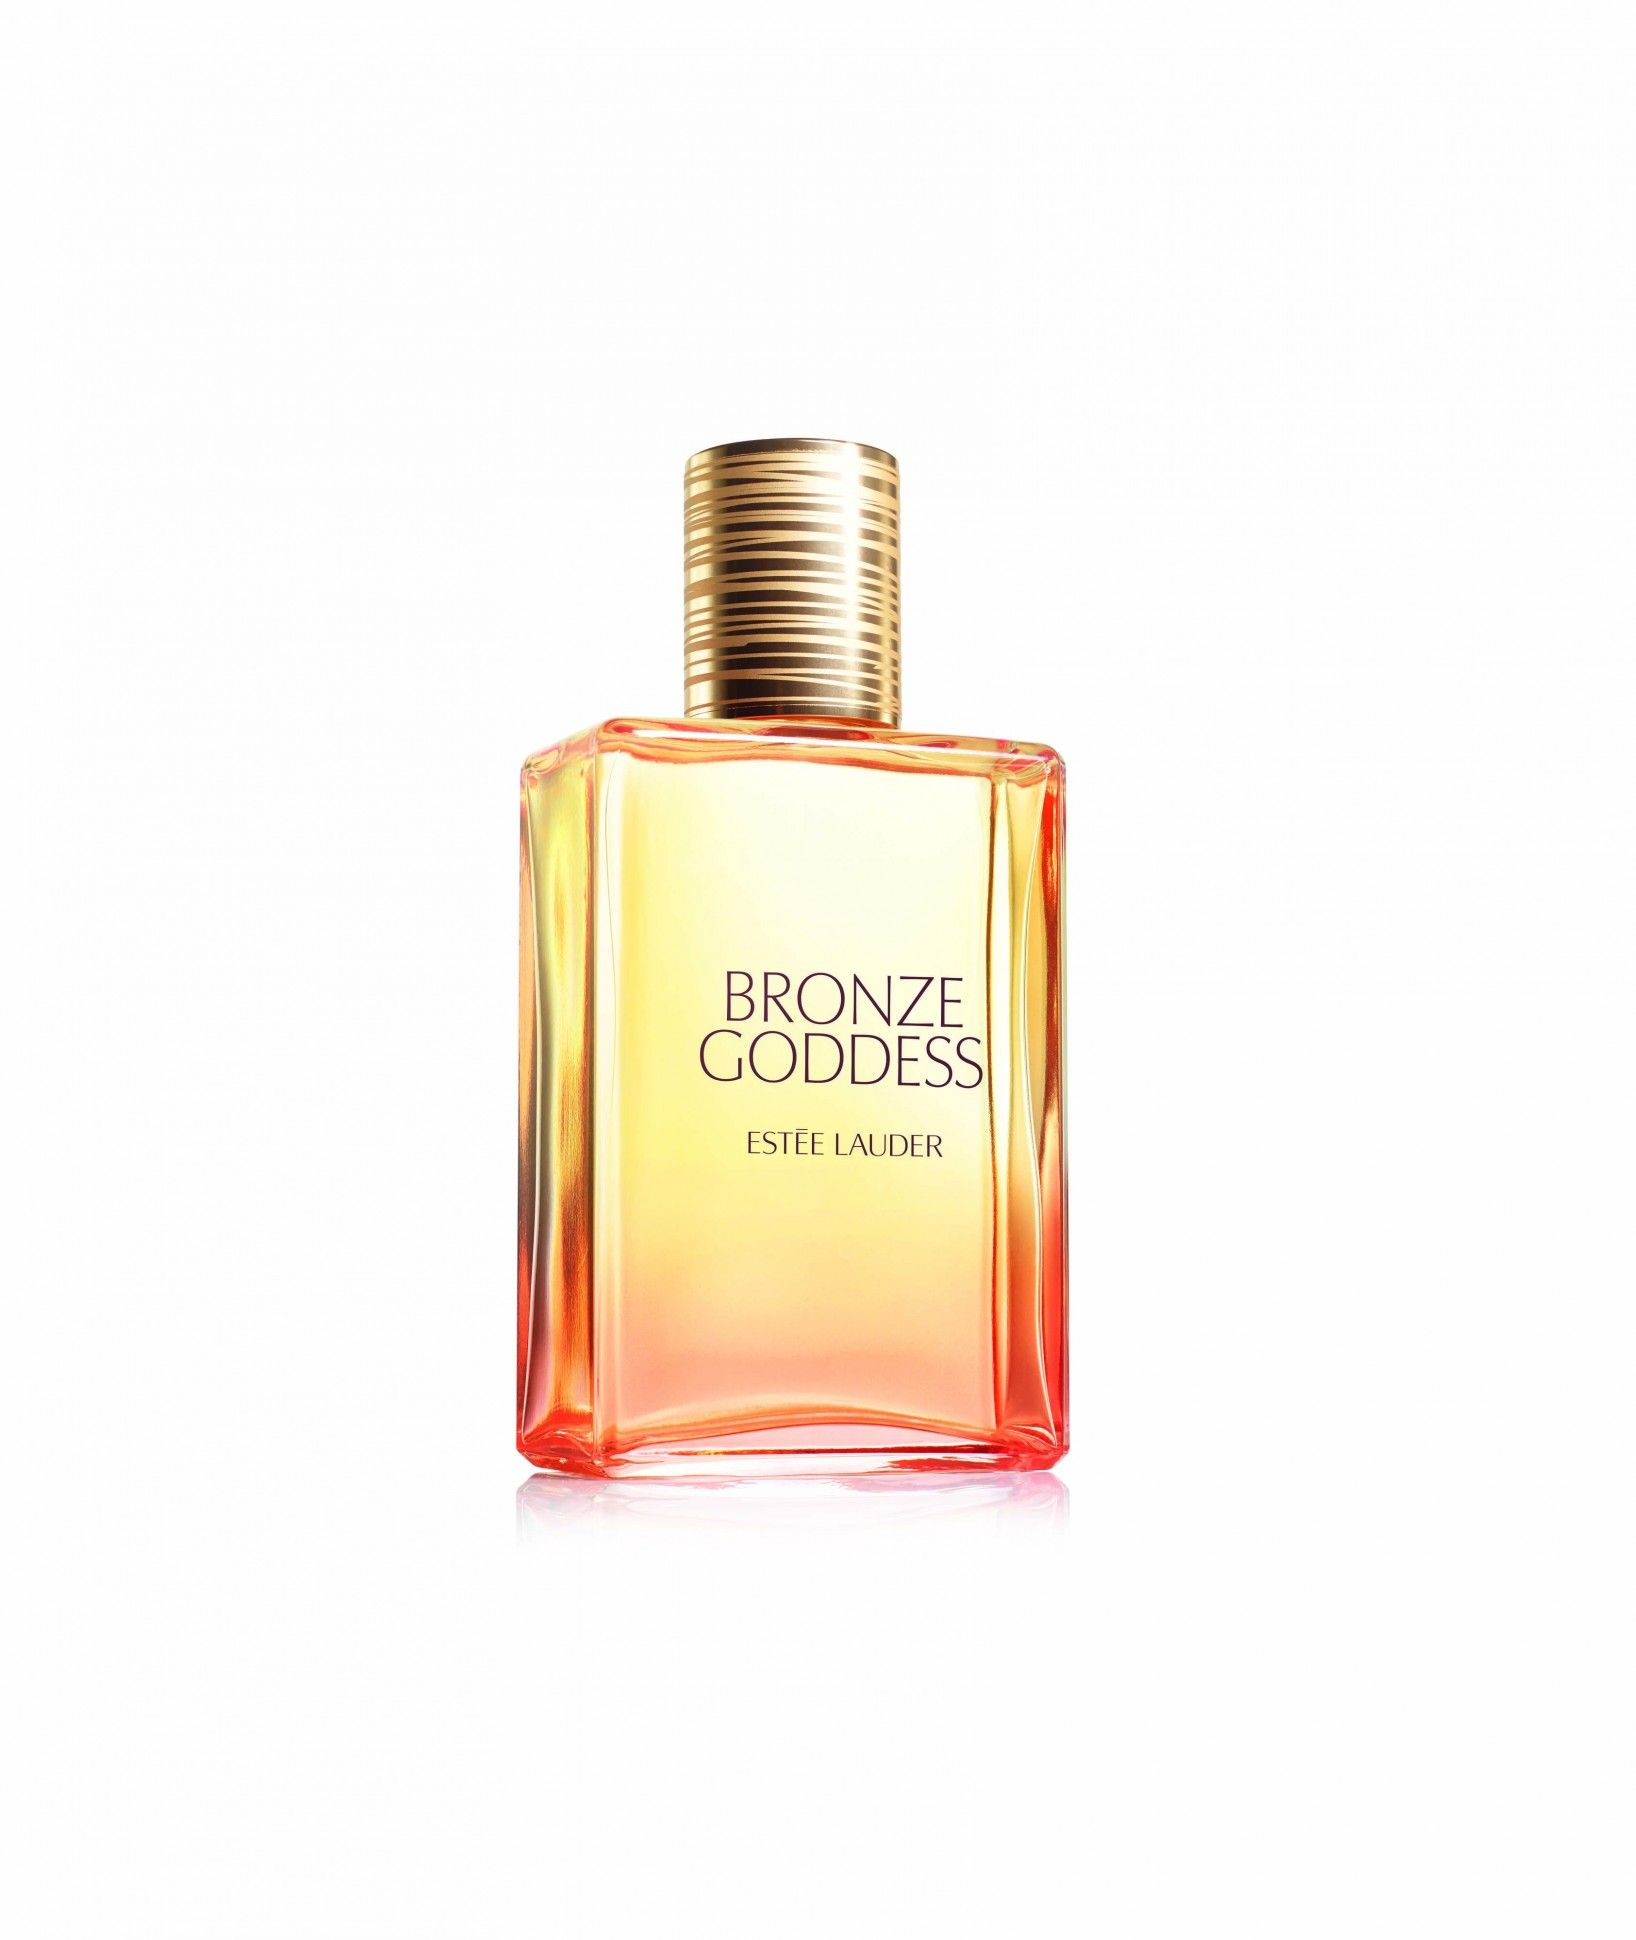 New Perfume for Summer: Estee Lauder Bronze Goddess Eau Fragrance Skinscent